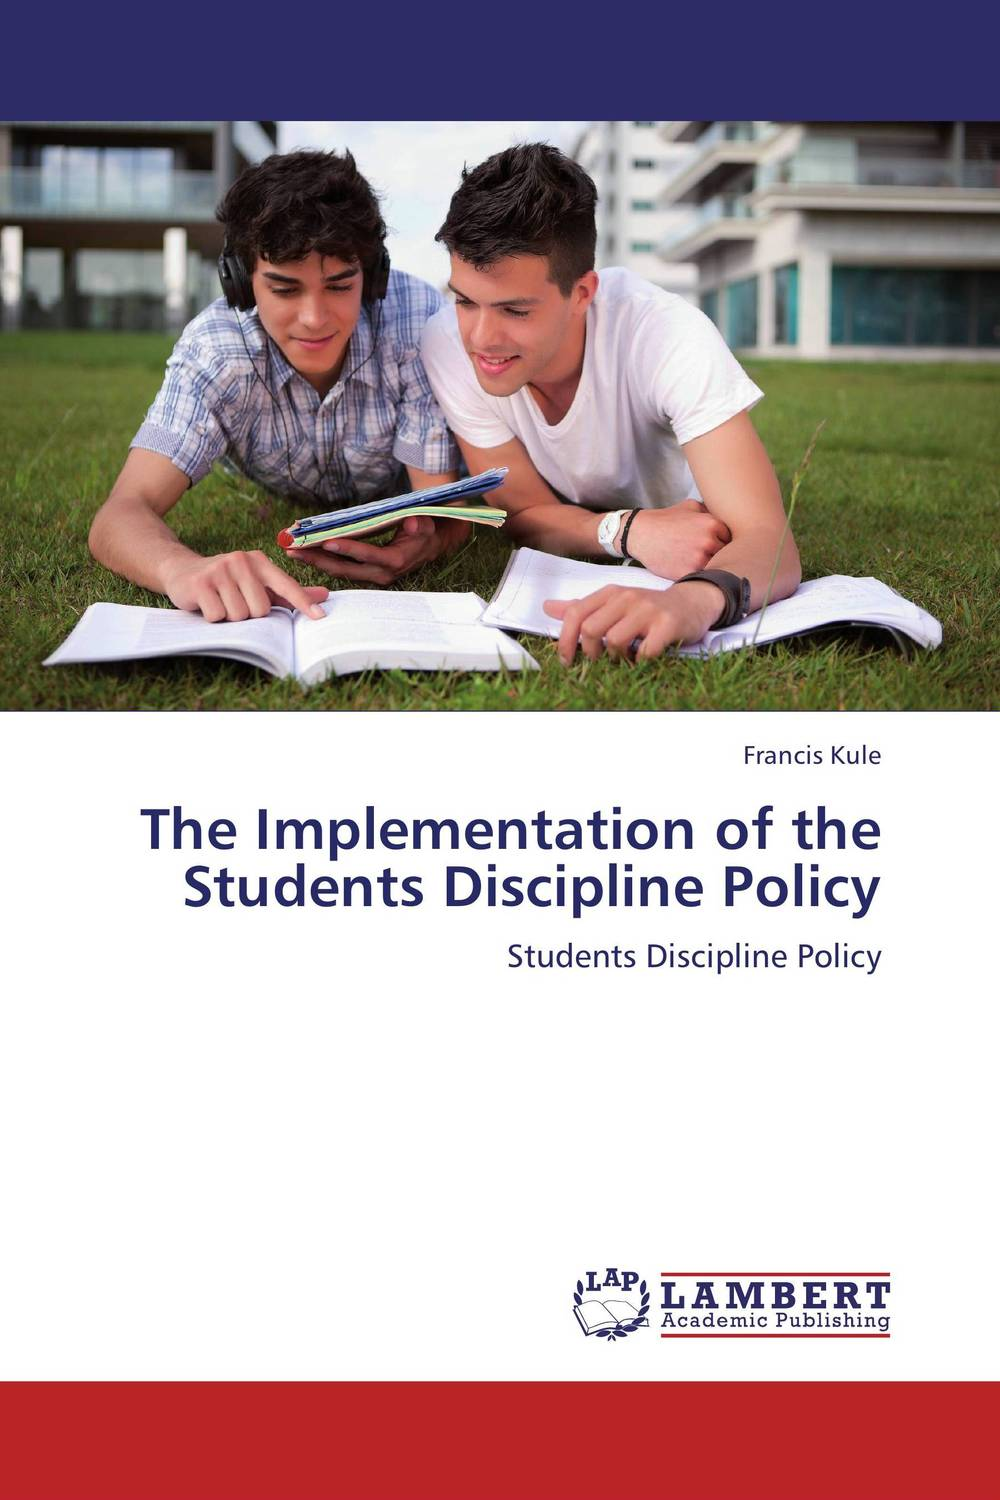 The Implementation of the Students Discipline Policy